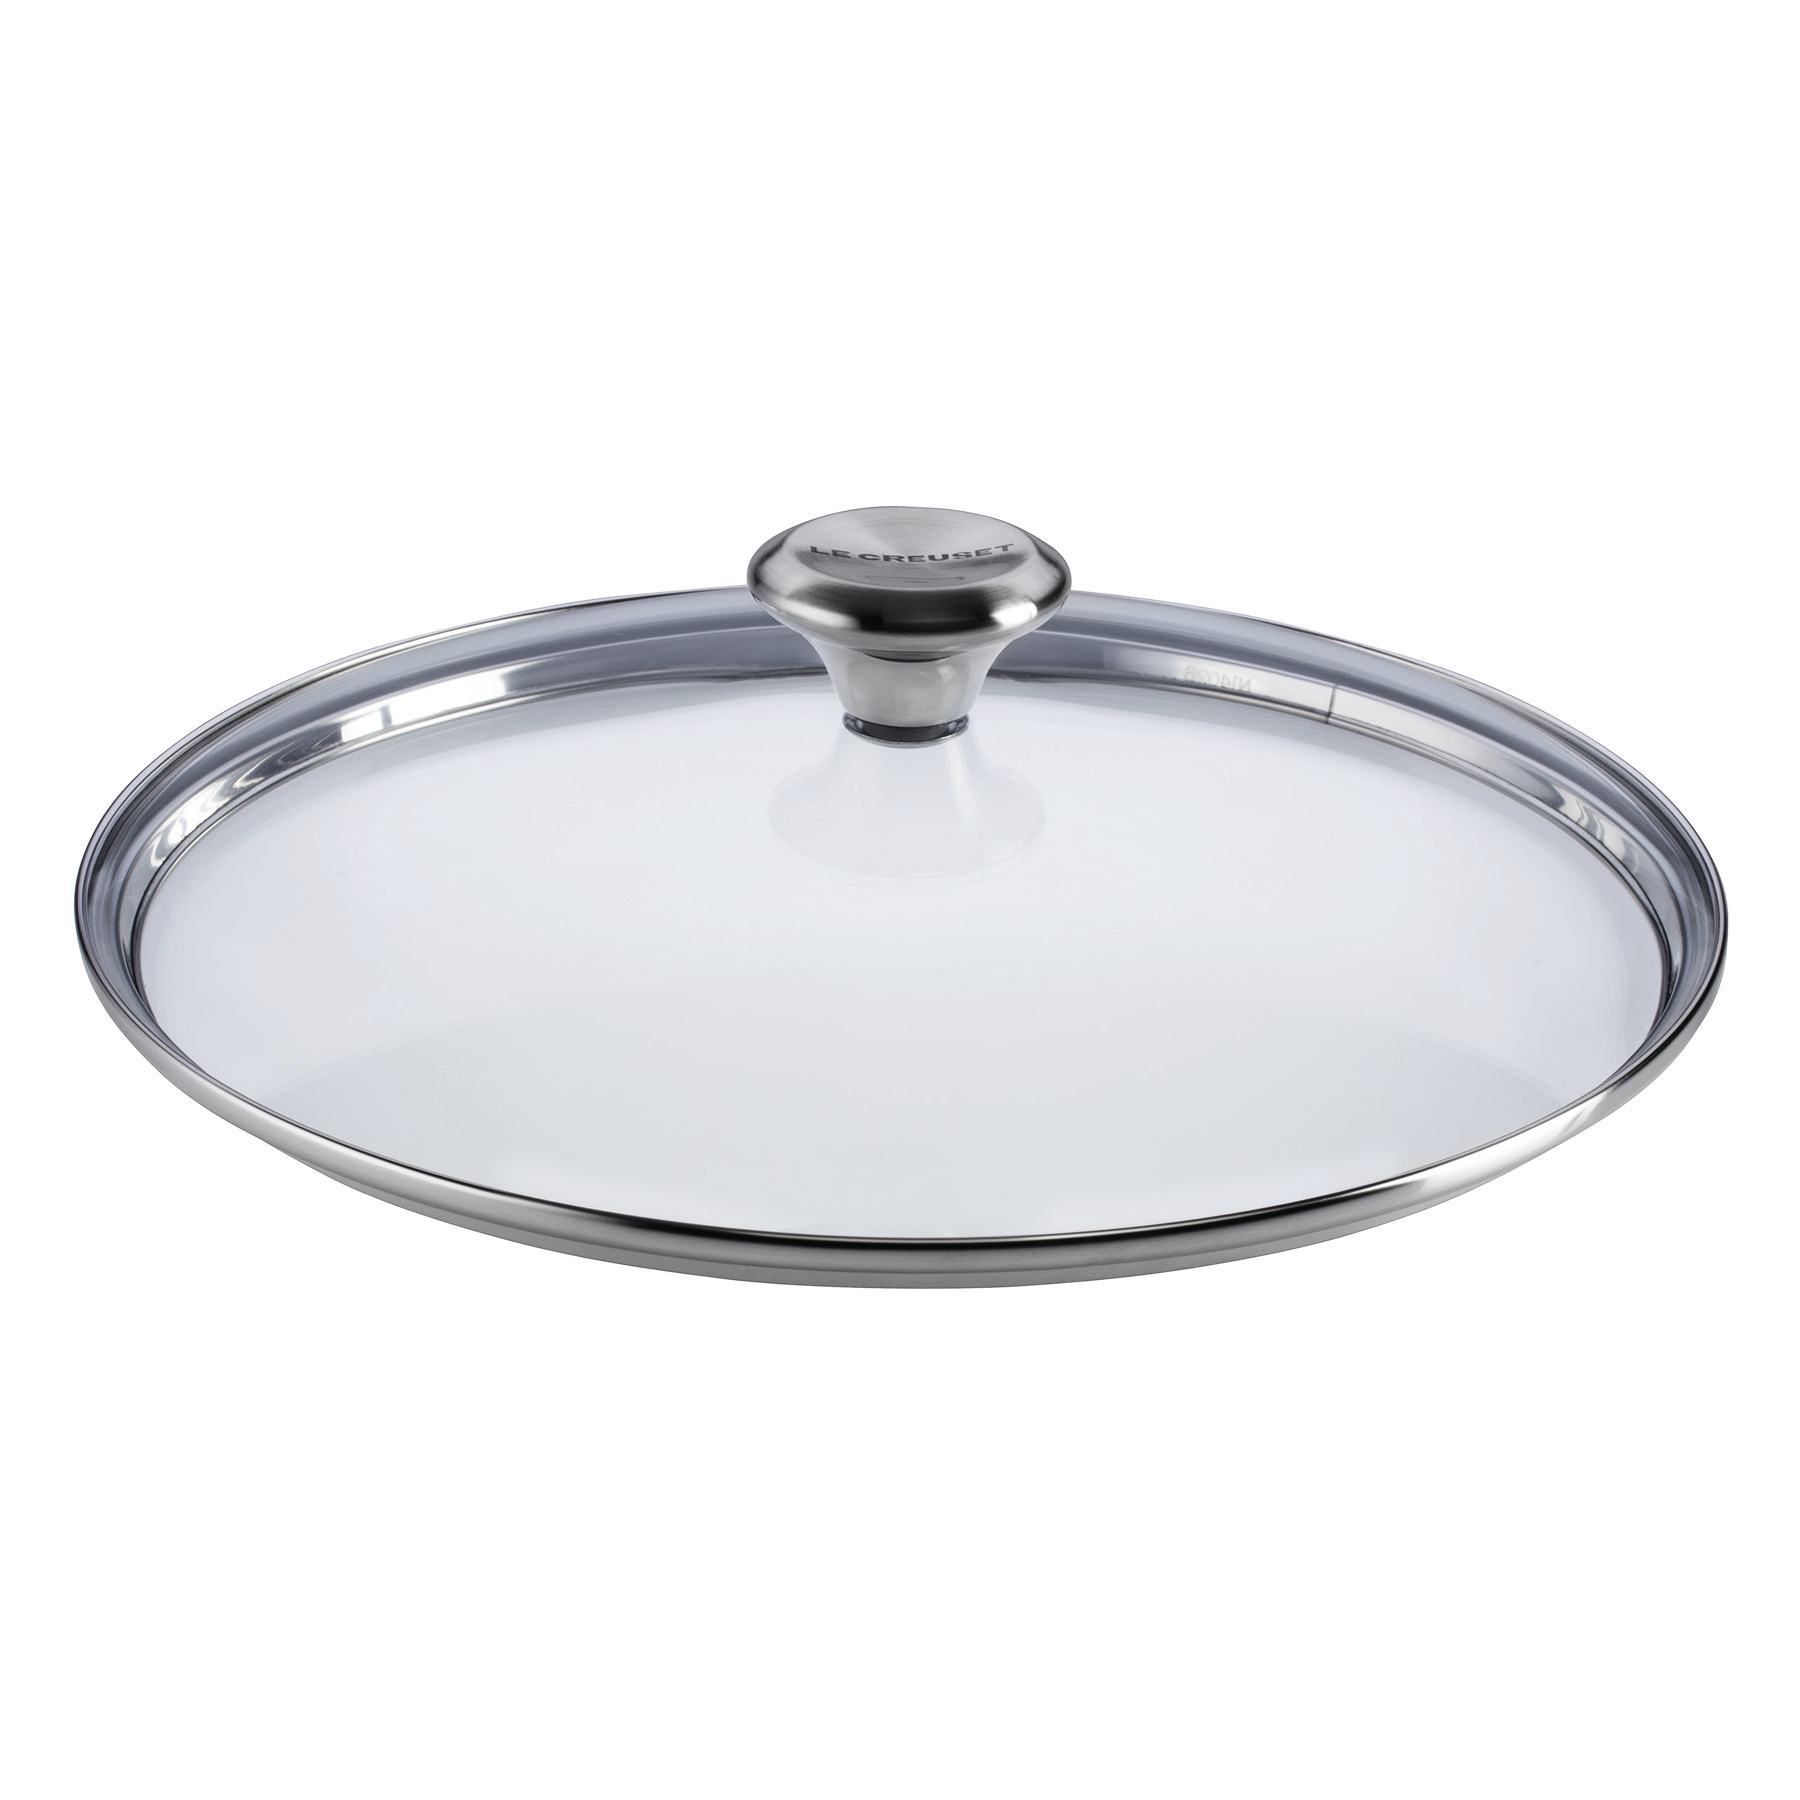 Le Creuset Signature Tempered Glass Lid with Knob Handle For 11 Inch Stainless Steel or Nonstick Fry Pan